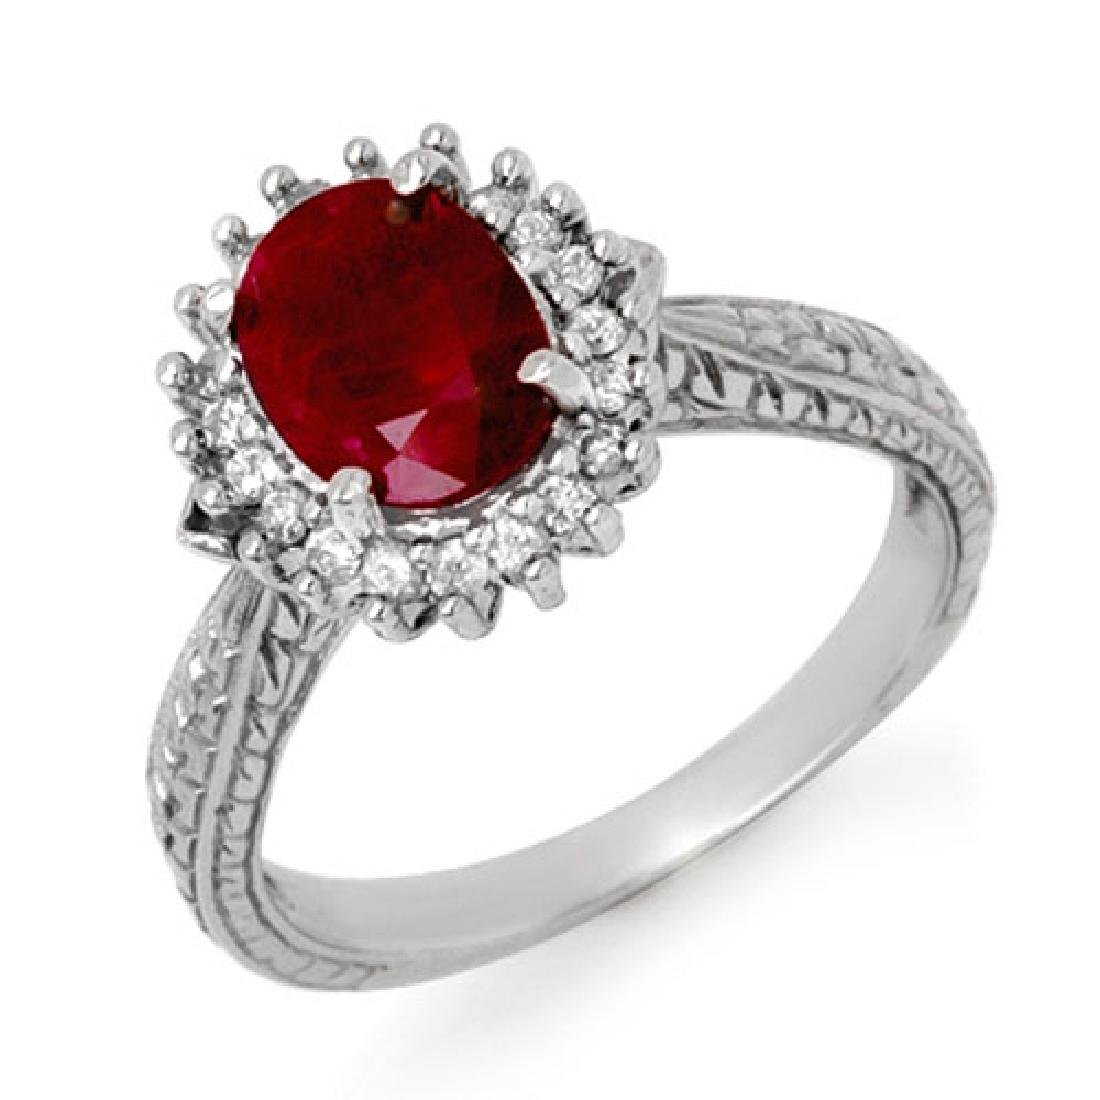 2.75 CTW Ruby & Diamond Ring 10K White Gold